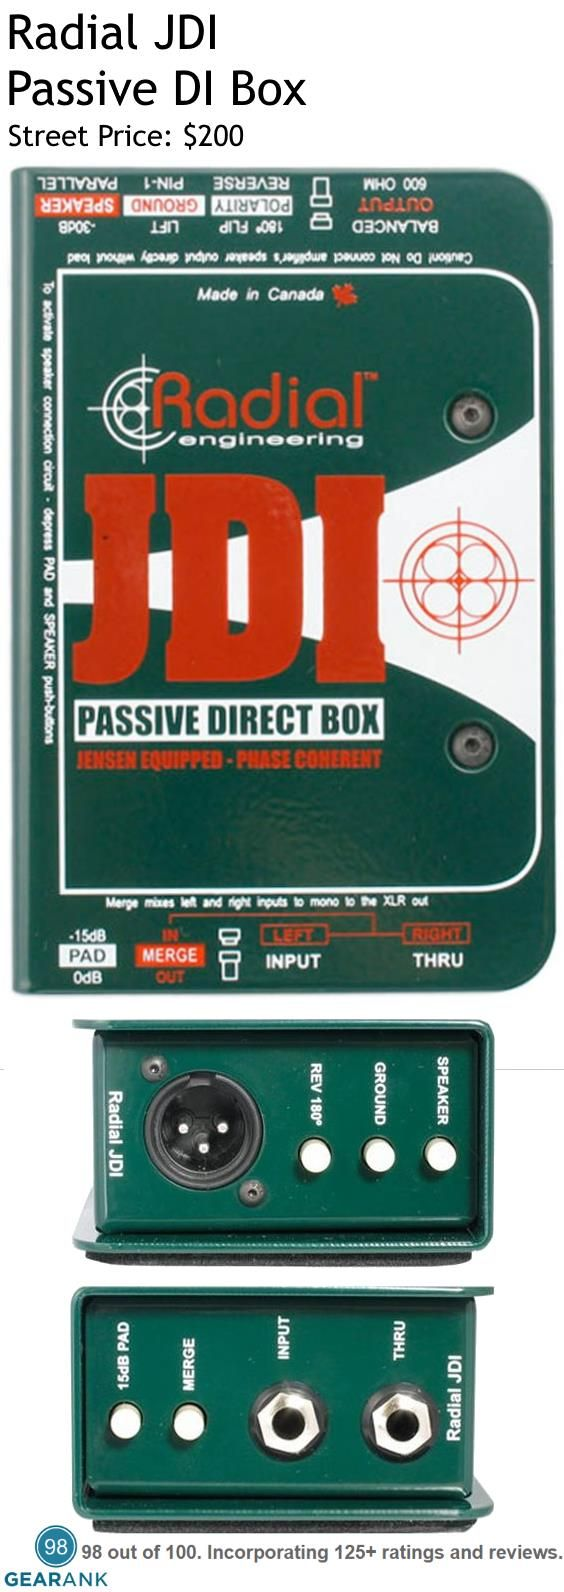 Radial JDI Passive DI Box. This is one of the highest rated DI Boxes on the market. Features: Jensen Transformer equipped passive DI - Eliminates hum and buzz from ground loops - Virtually zero phase & harmonic distortion - Exceptional signal handling and noise rejection